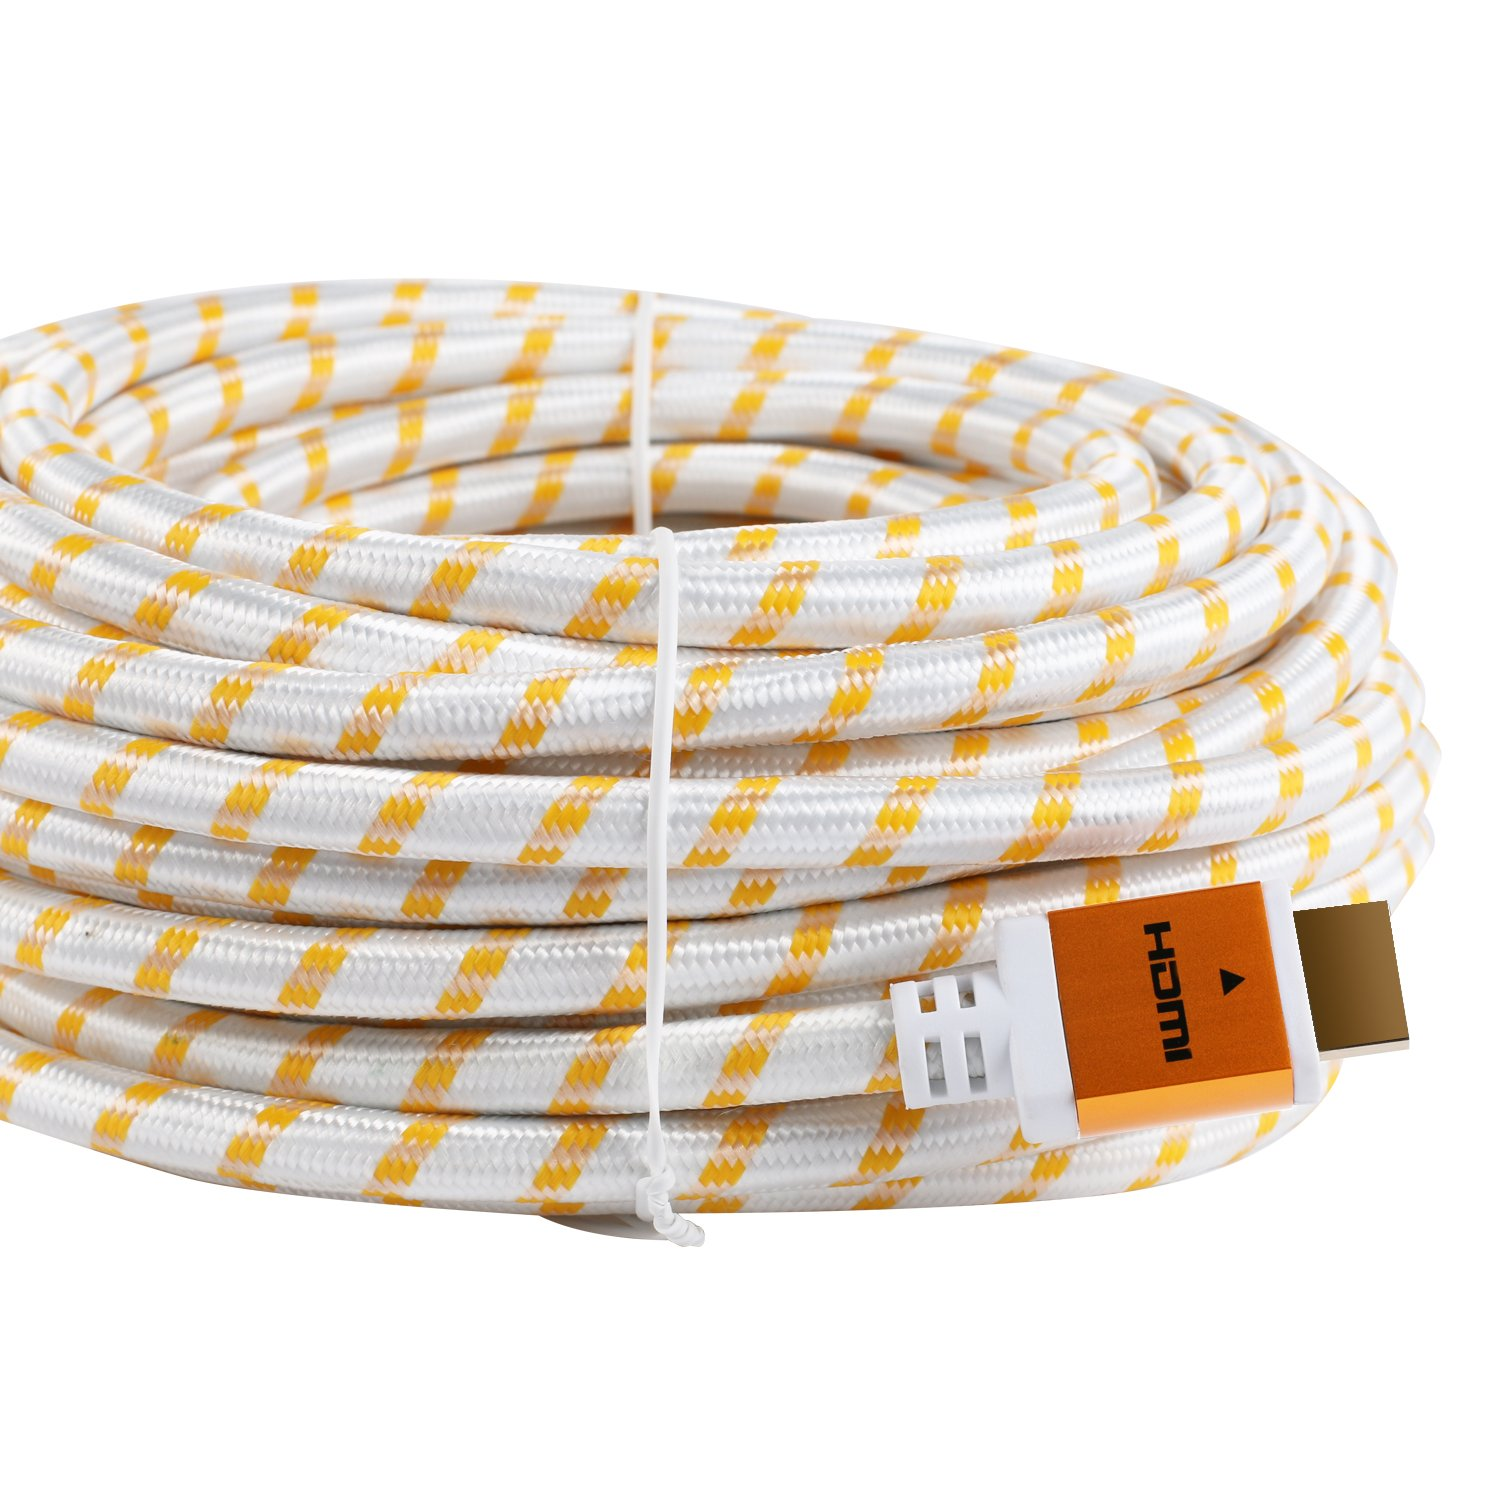 SHD HDMI Cable 4kx2k Ultra 2.0V Support 3D,Ethernet,1080P -50Feet-Golden